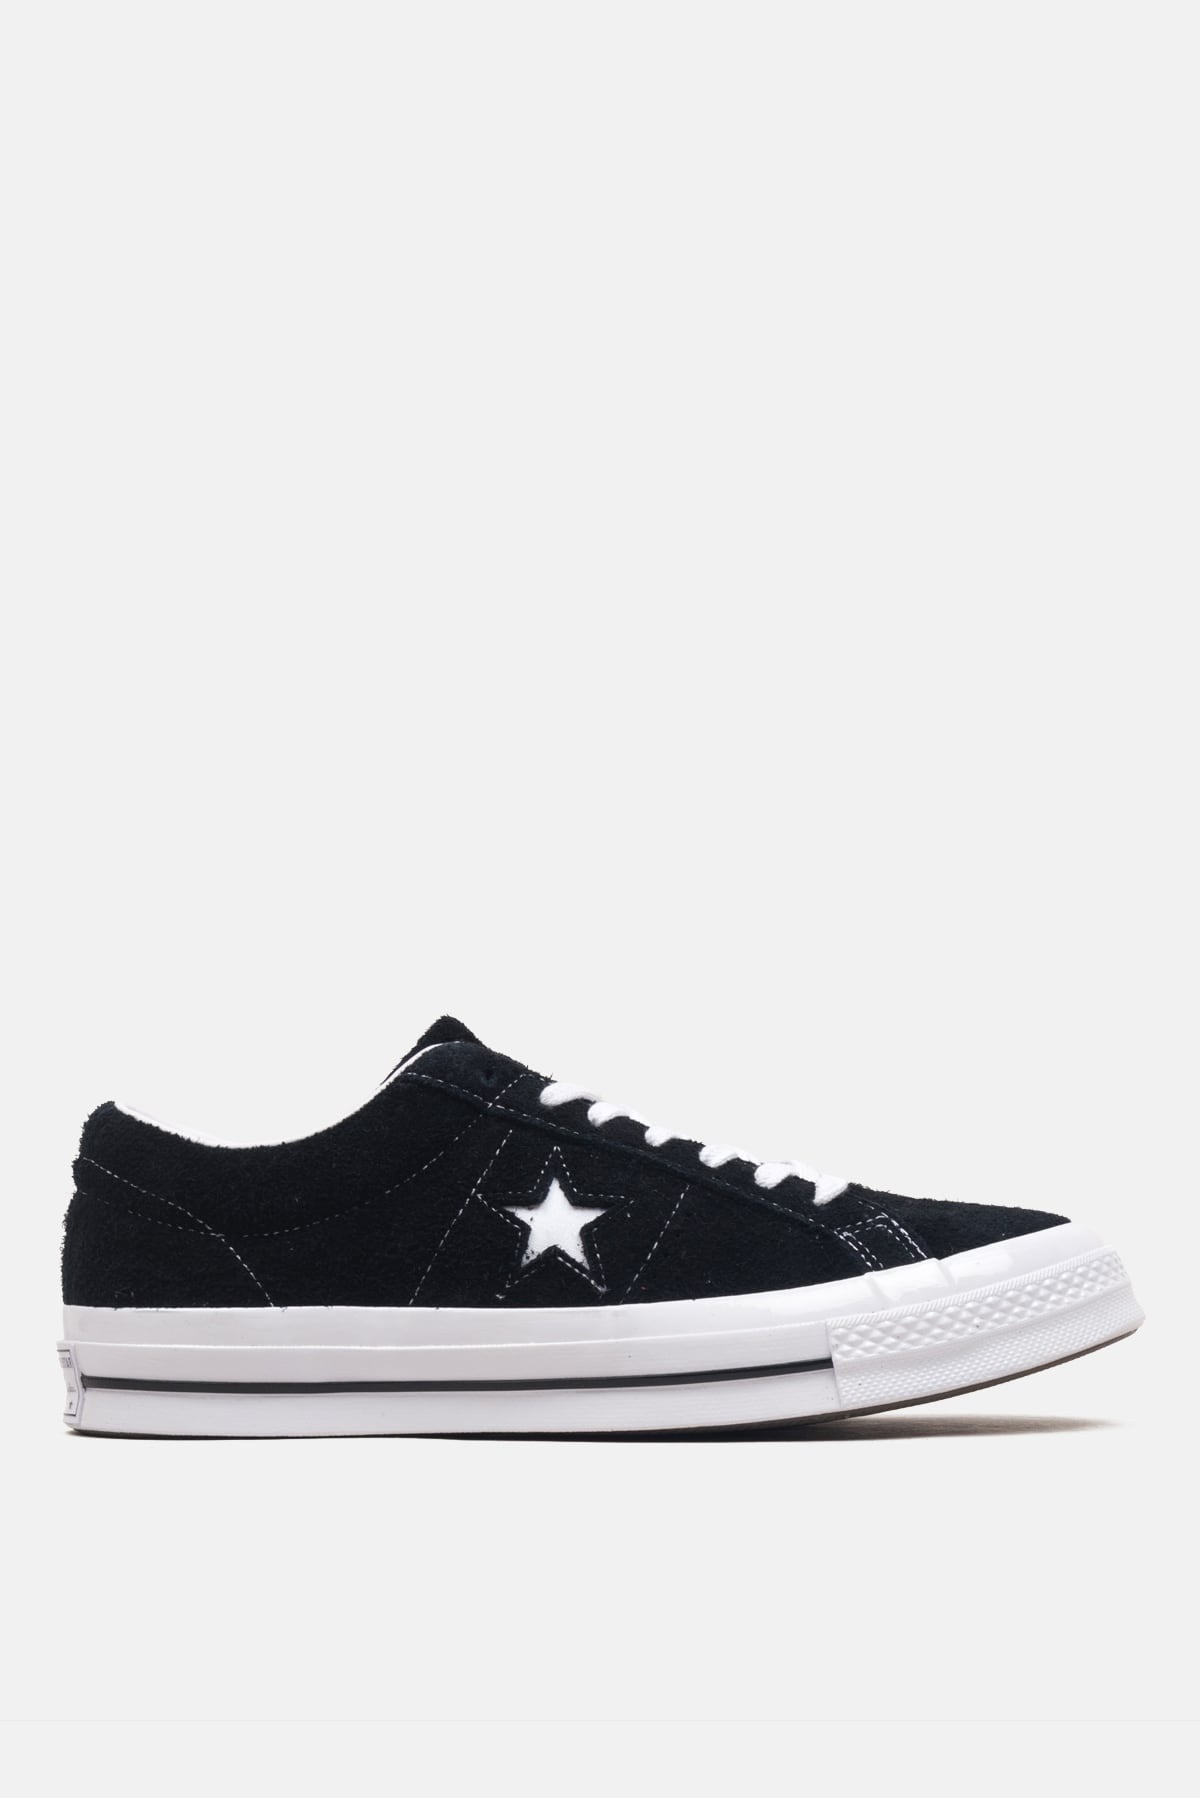 Converse One Star Pro Shoes available from Priory b5343abb3